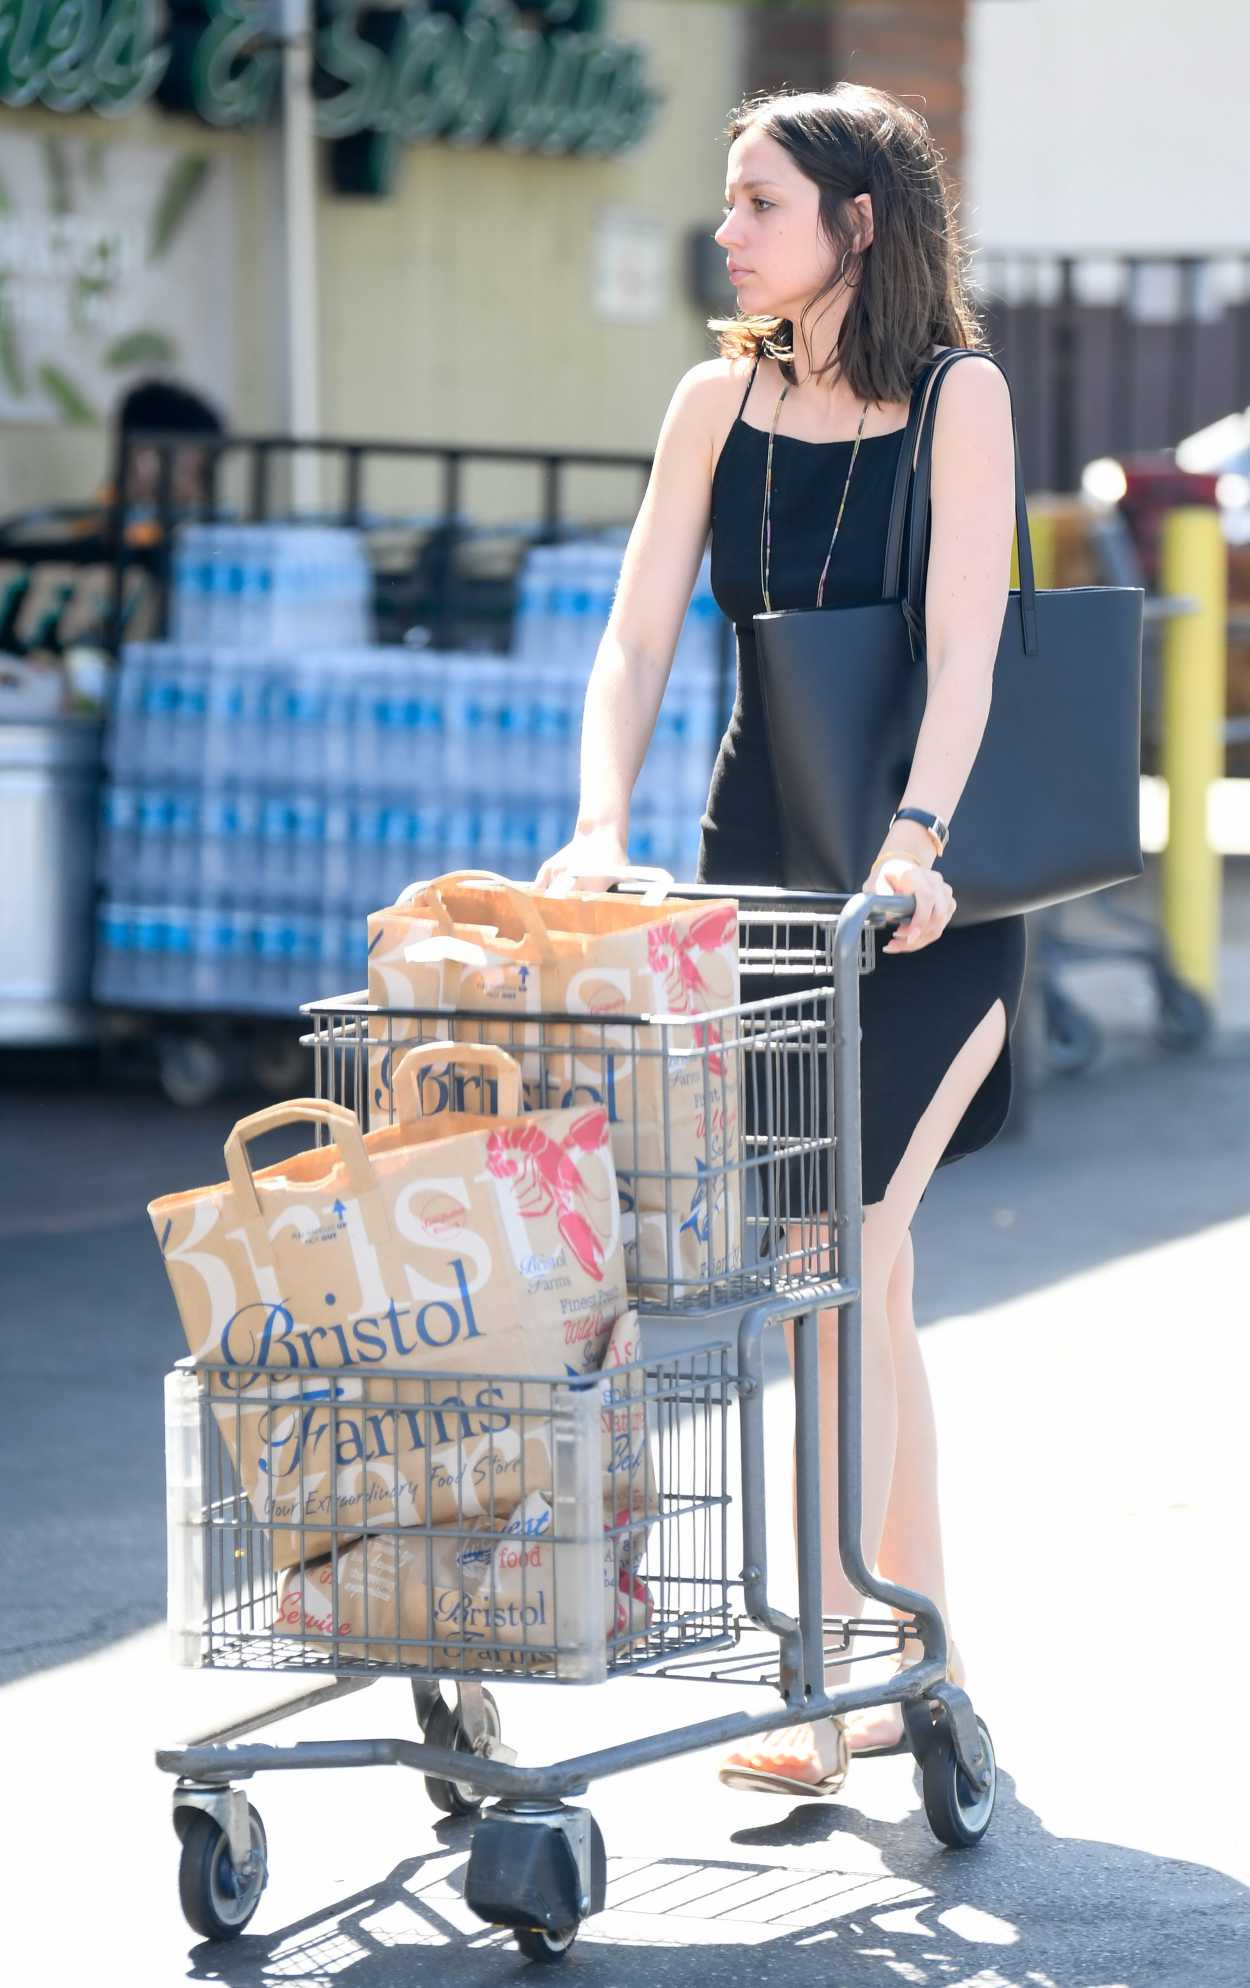 Ana de Armas in a Black Dress Attends the Bristol Farms in